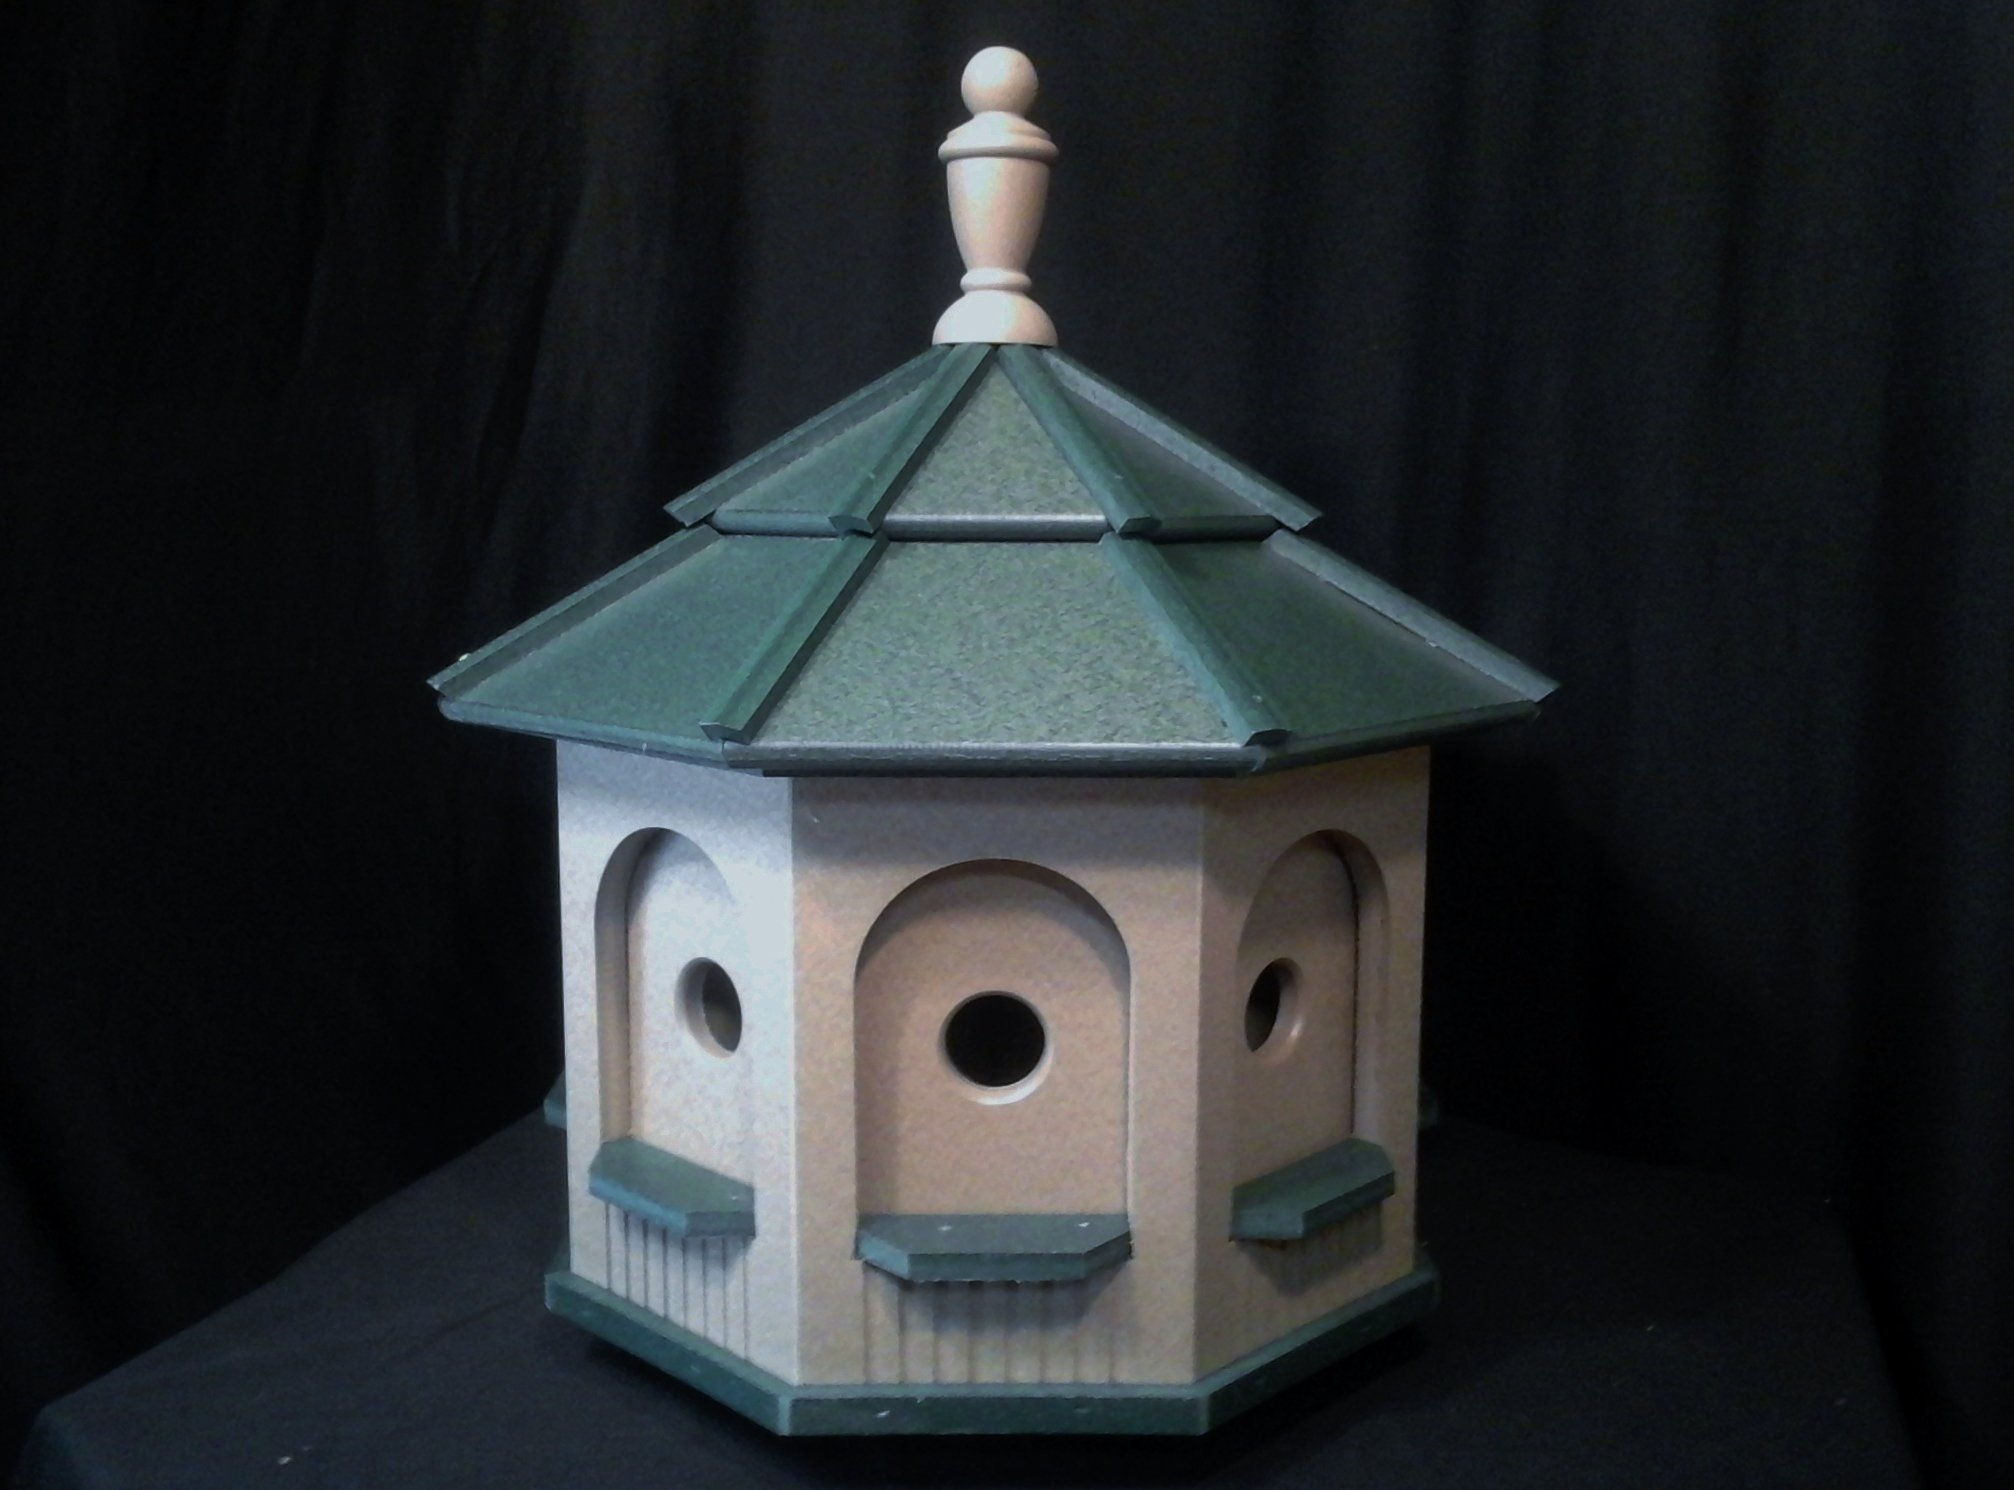 Large Poly Octagon Handcrafted Handmade Homemade Birdhouse Garden Clay & Green Roof